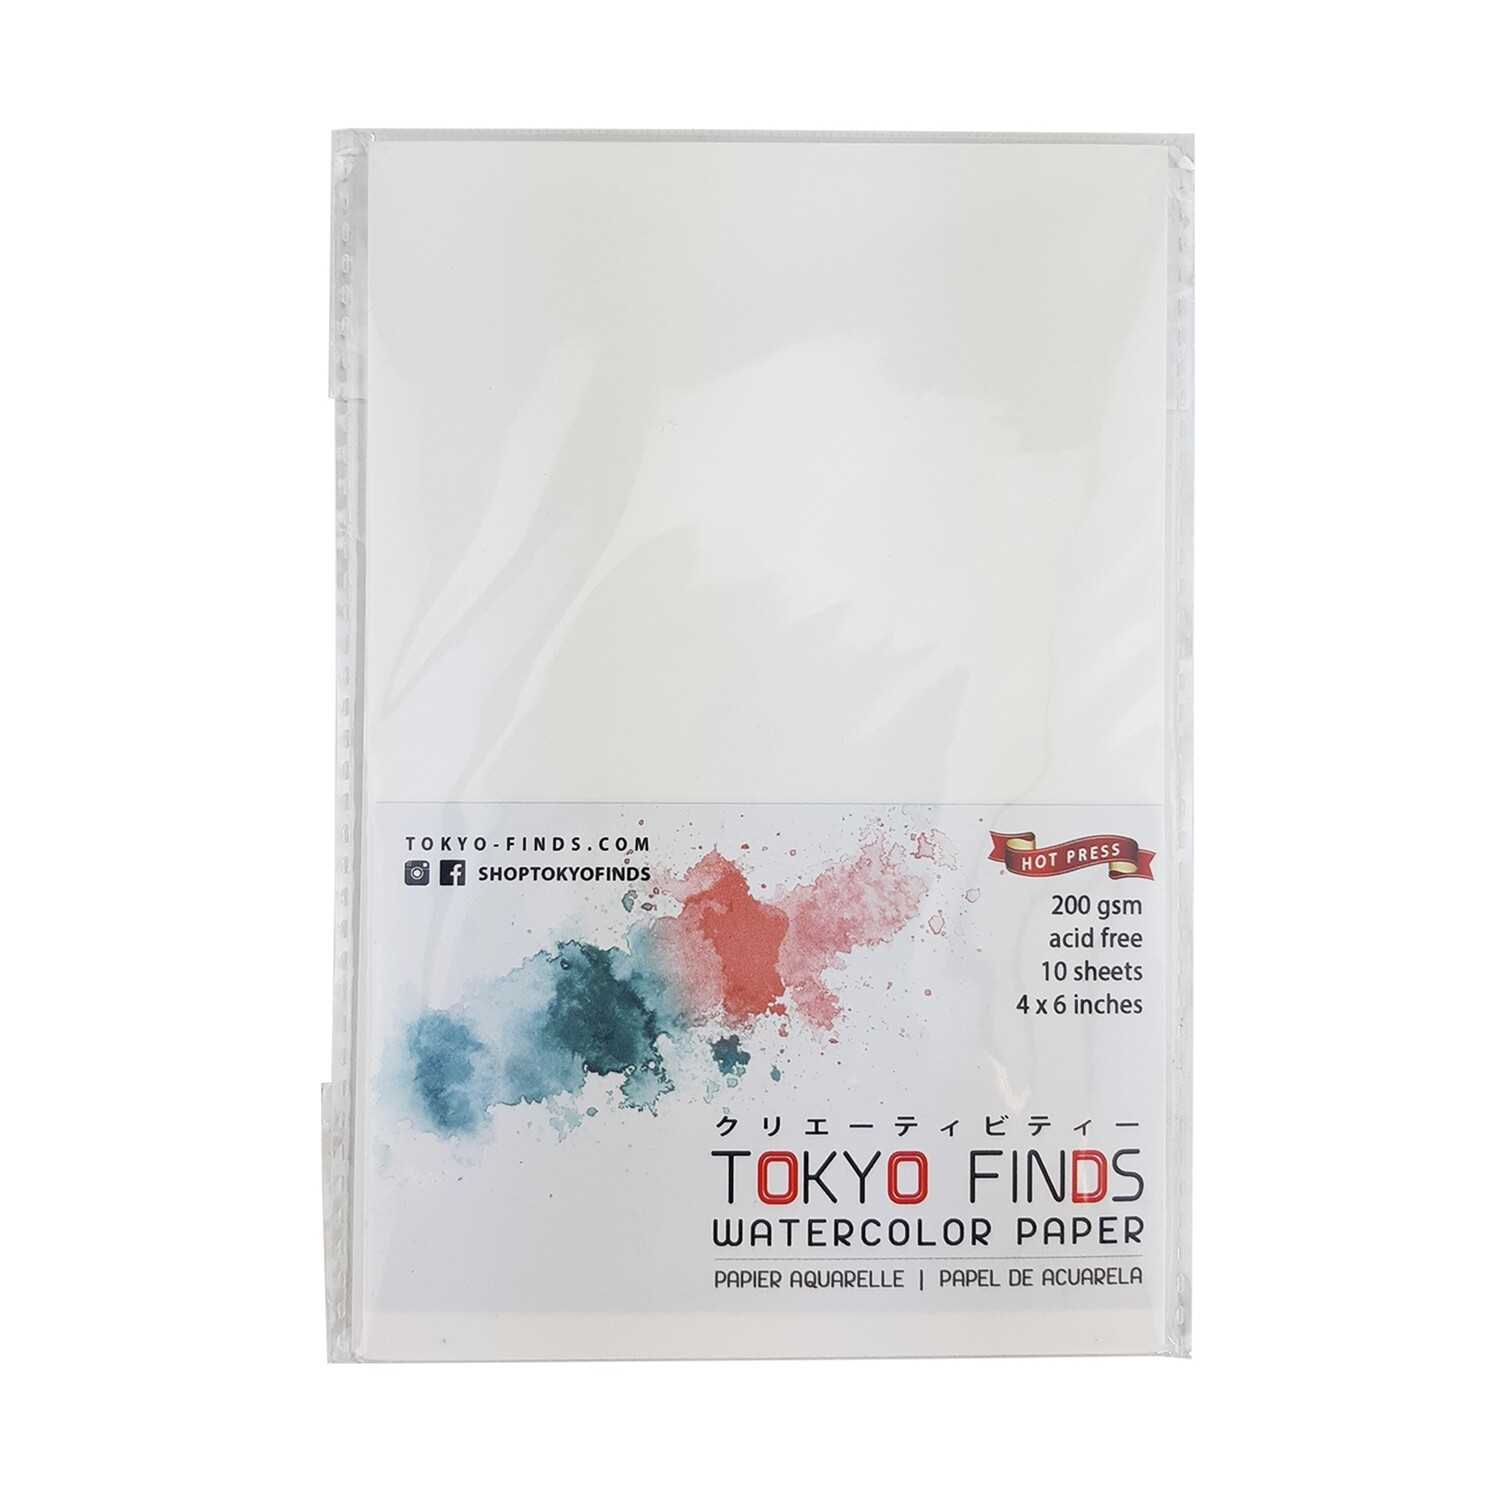 Tokyo Finds Watercolor Paper Hot Press (Smooth) 200 GSM 4x6 inches